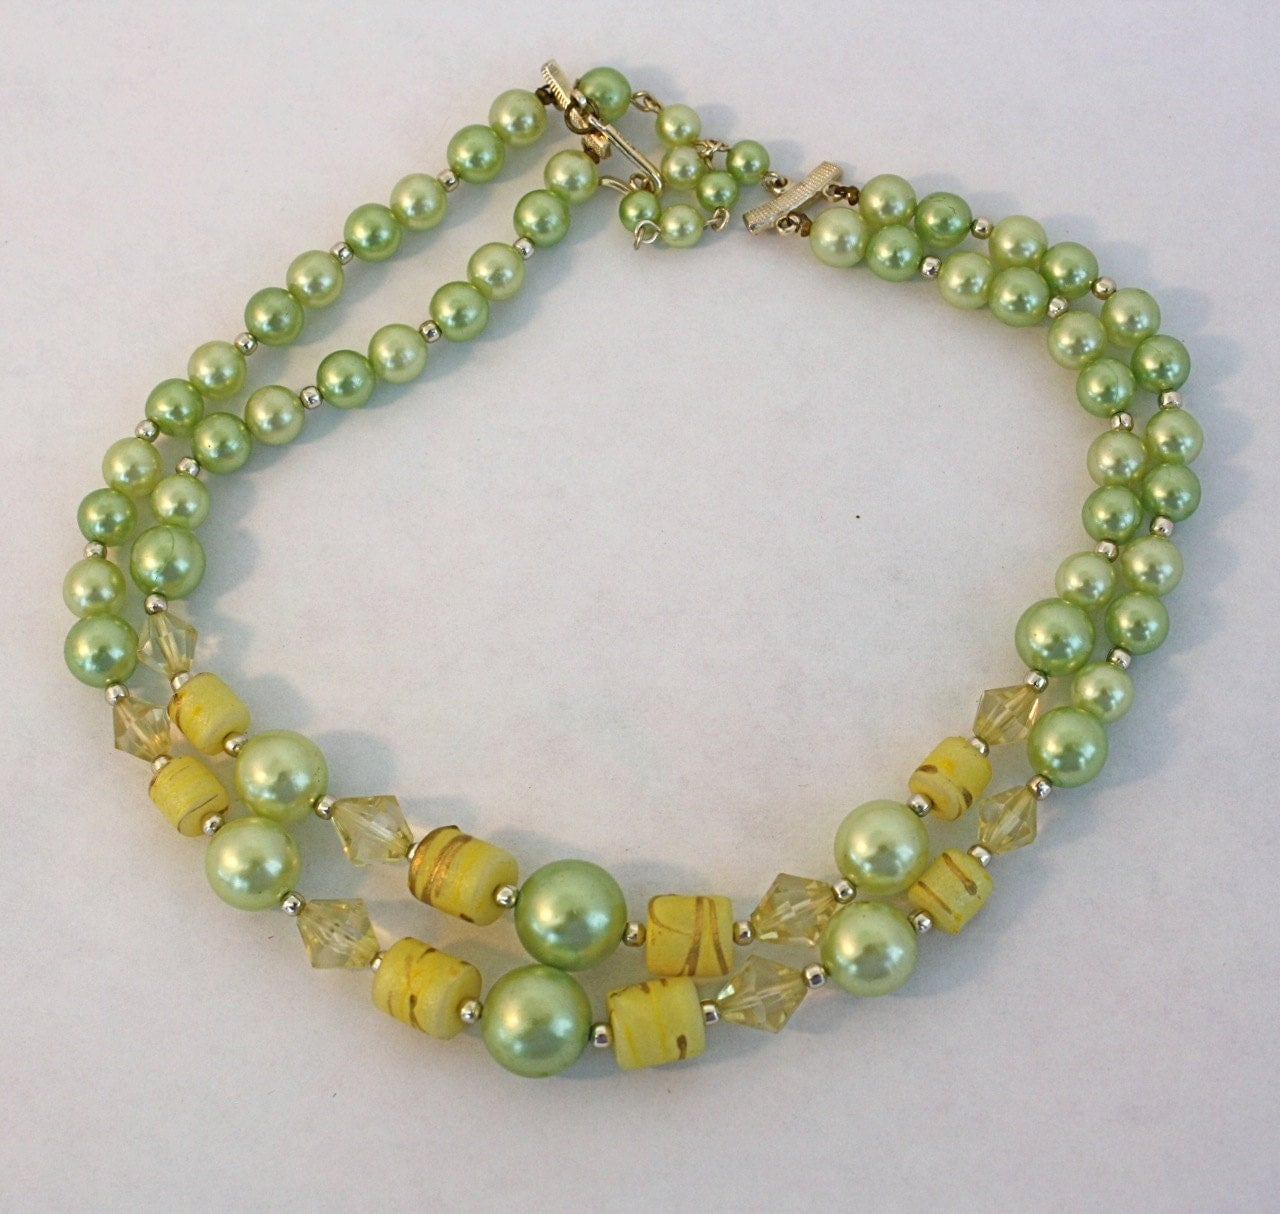 vintage 50s bead choker necklace 2 strand green yellow plastic